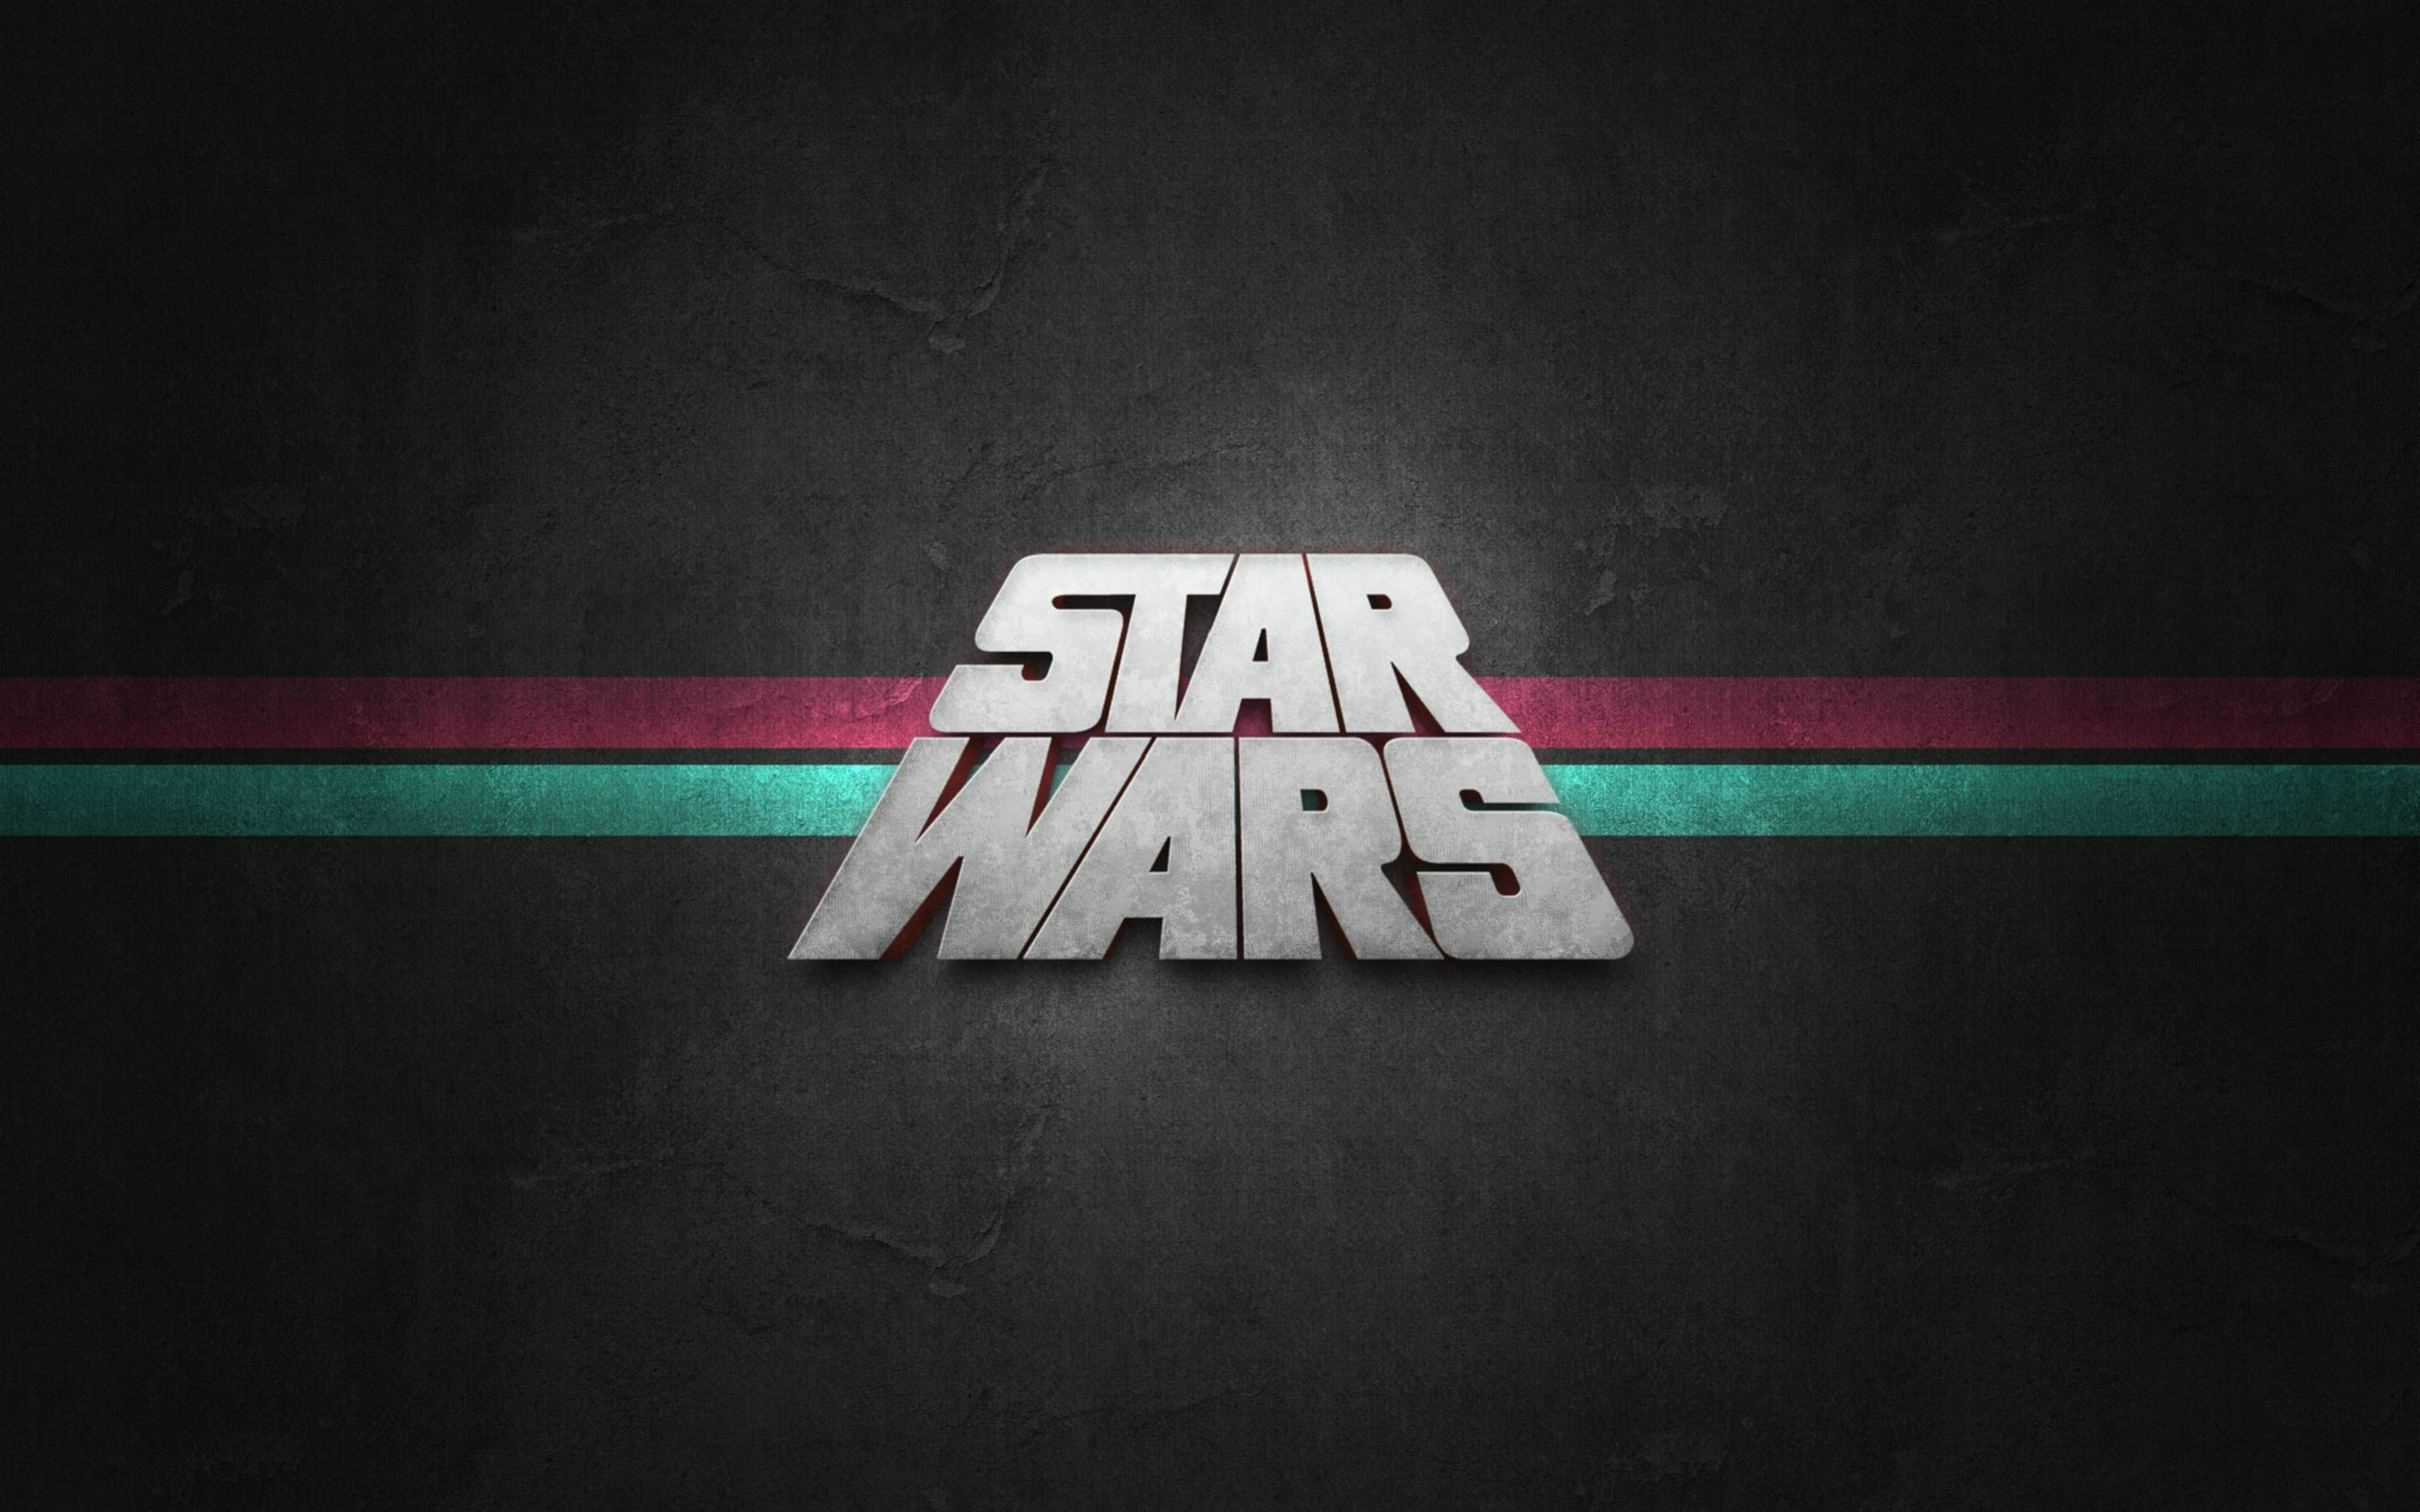 star wars wallpaper background